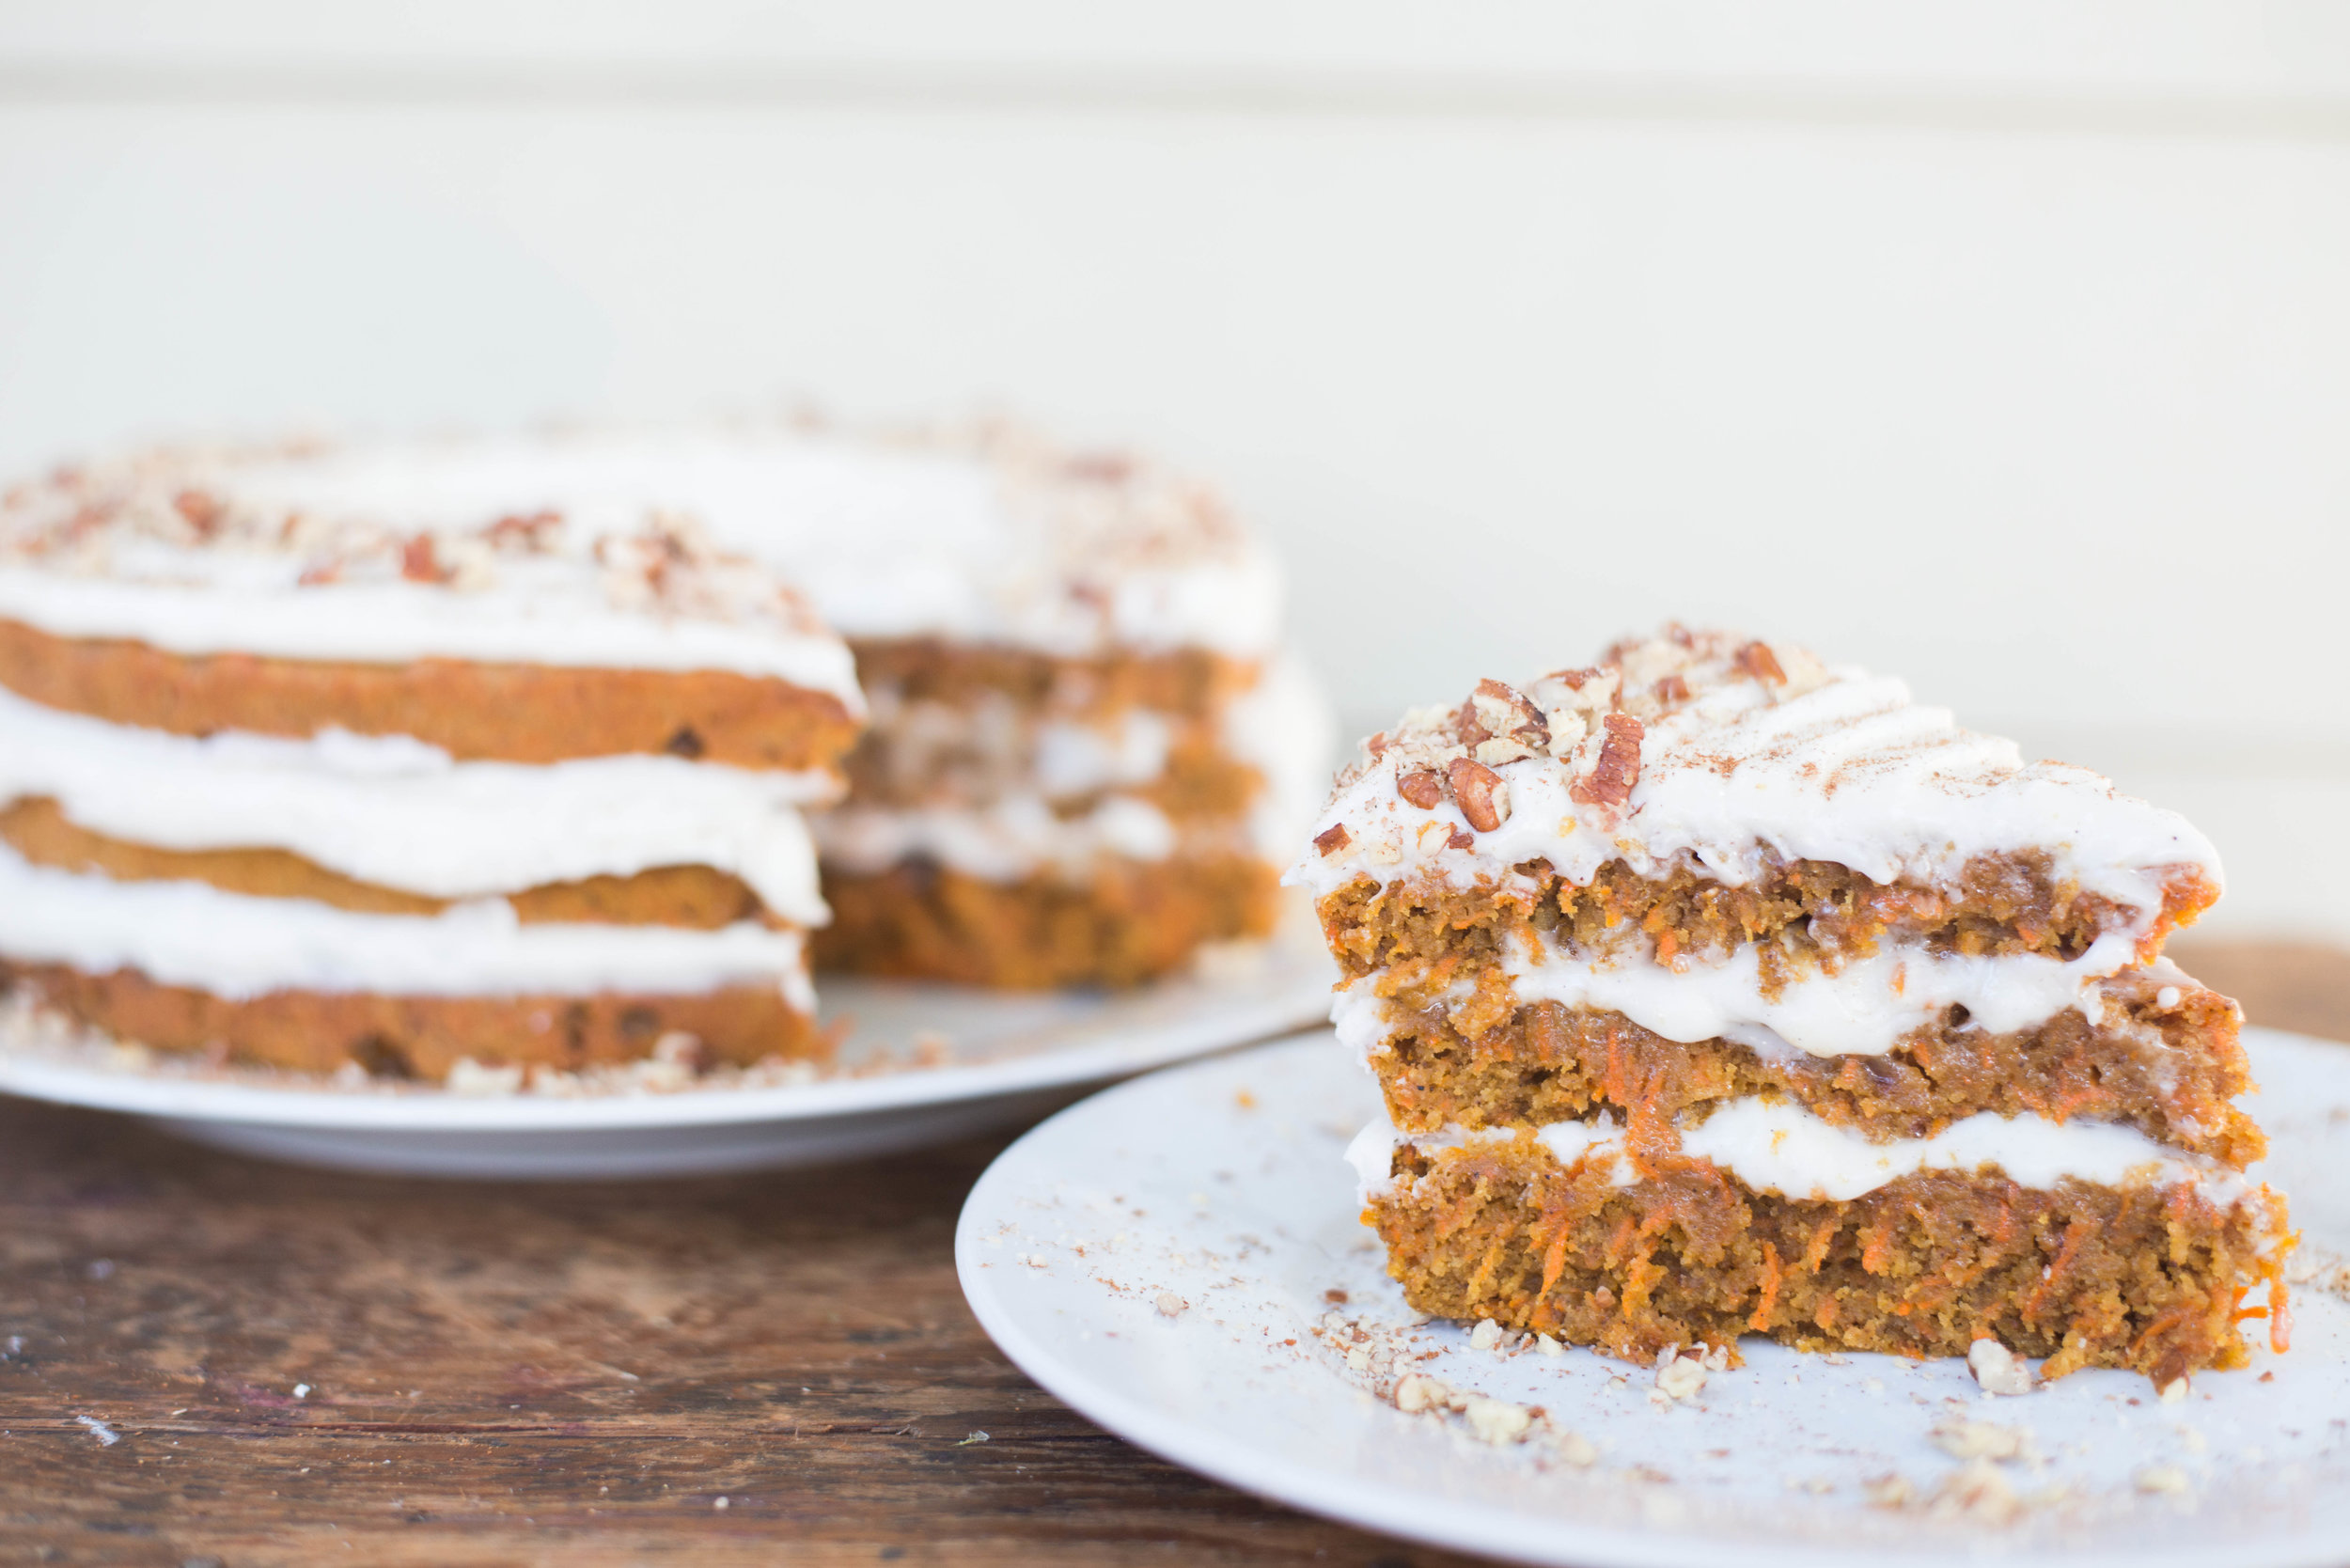 MIXED-AND-MEASURED-CARROT-CAKE_DSC_3252.jpg